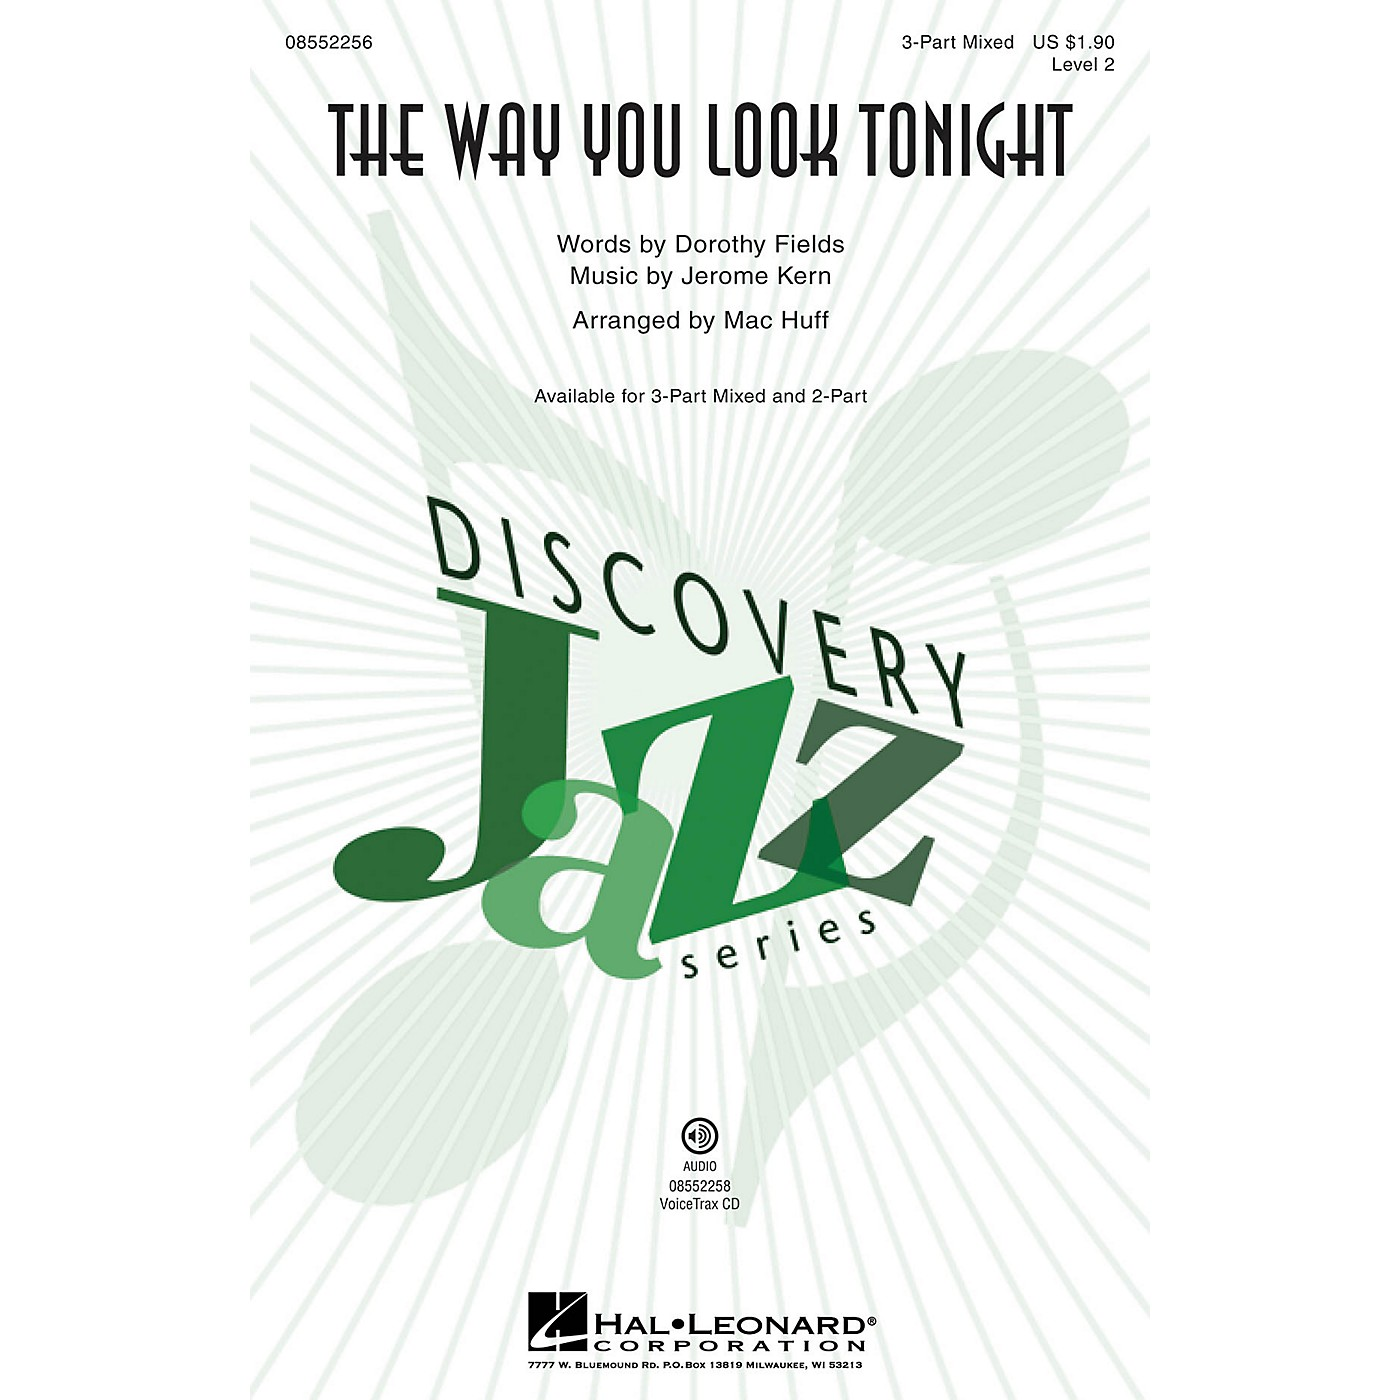 Hal Leonard The Way You Look Tonight (Discovery Level 2) 3-Part Mixed arranged by Mac Huff thumbnail